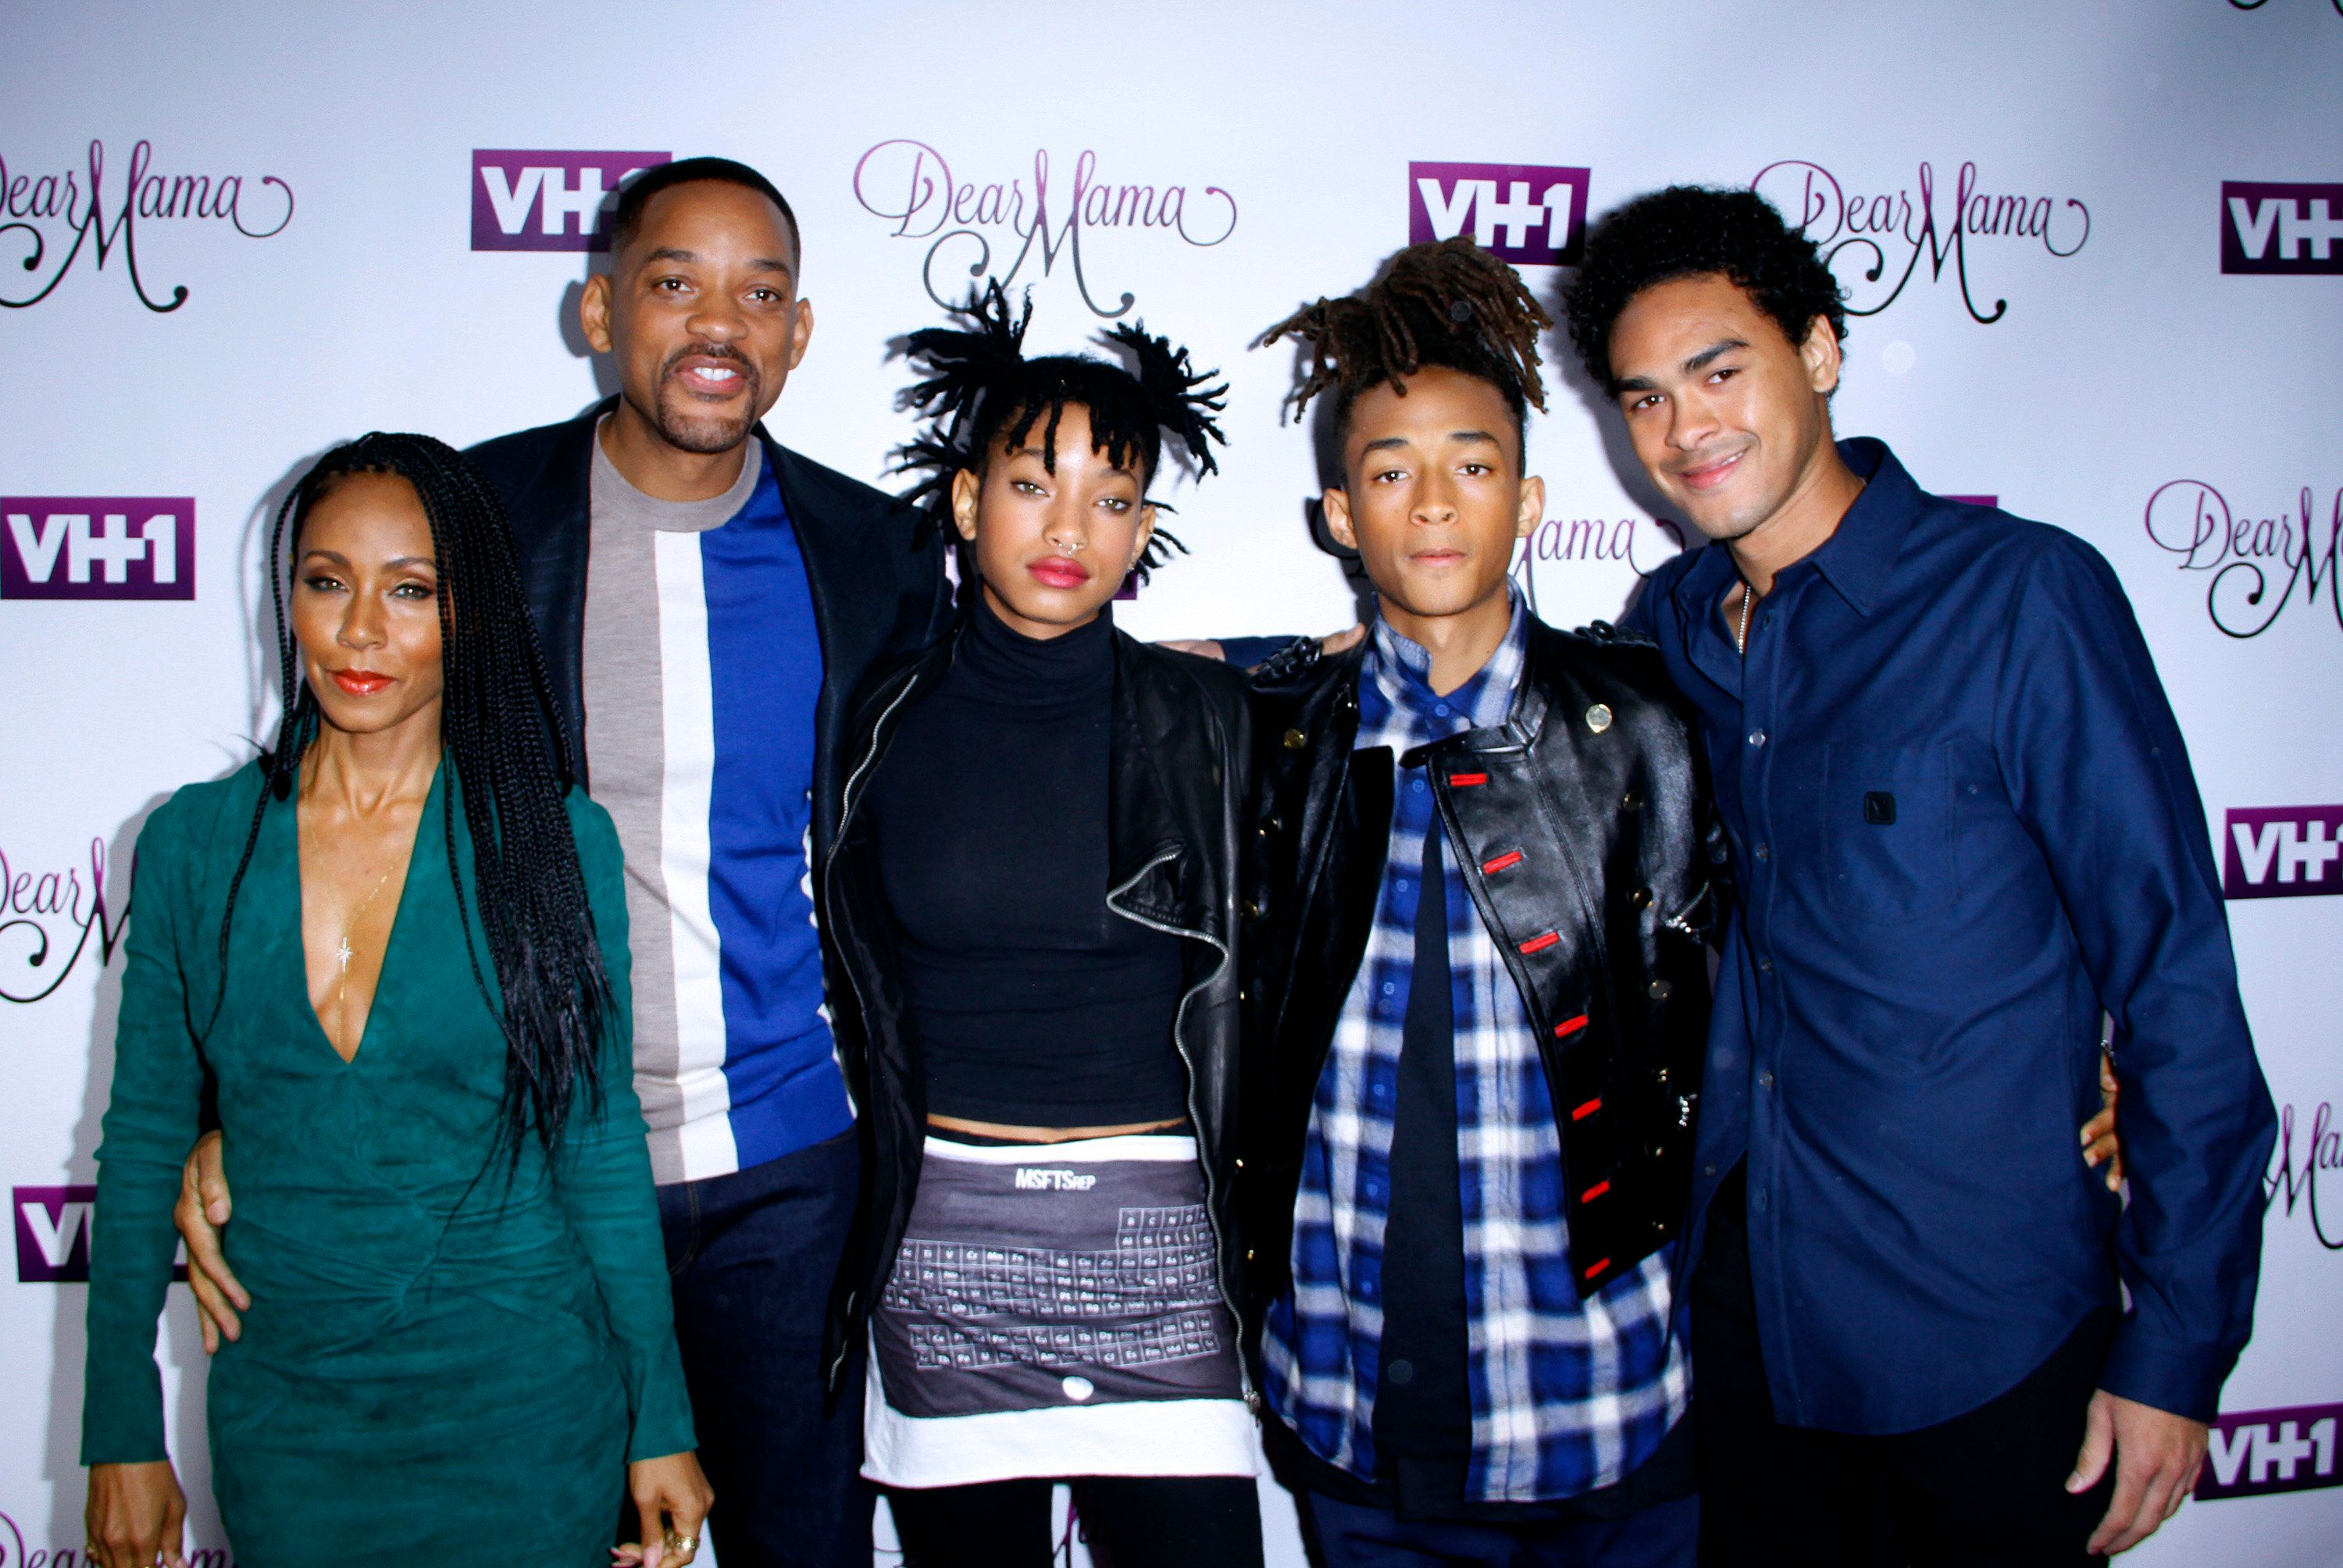 NEW YORK, NY - MAY 03:  Jada Pinkett Smith, Will Smith, Willow Smith, Jaden Smith and Trey Smith attend the VH1 'Dear Mama' taping at St. Bartholomew's Church on May 3, 2016 in New York City.   (Photo by Donna Ward/Getty Images)